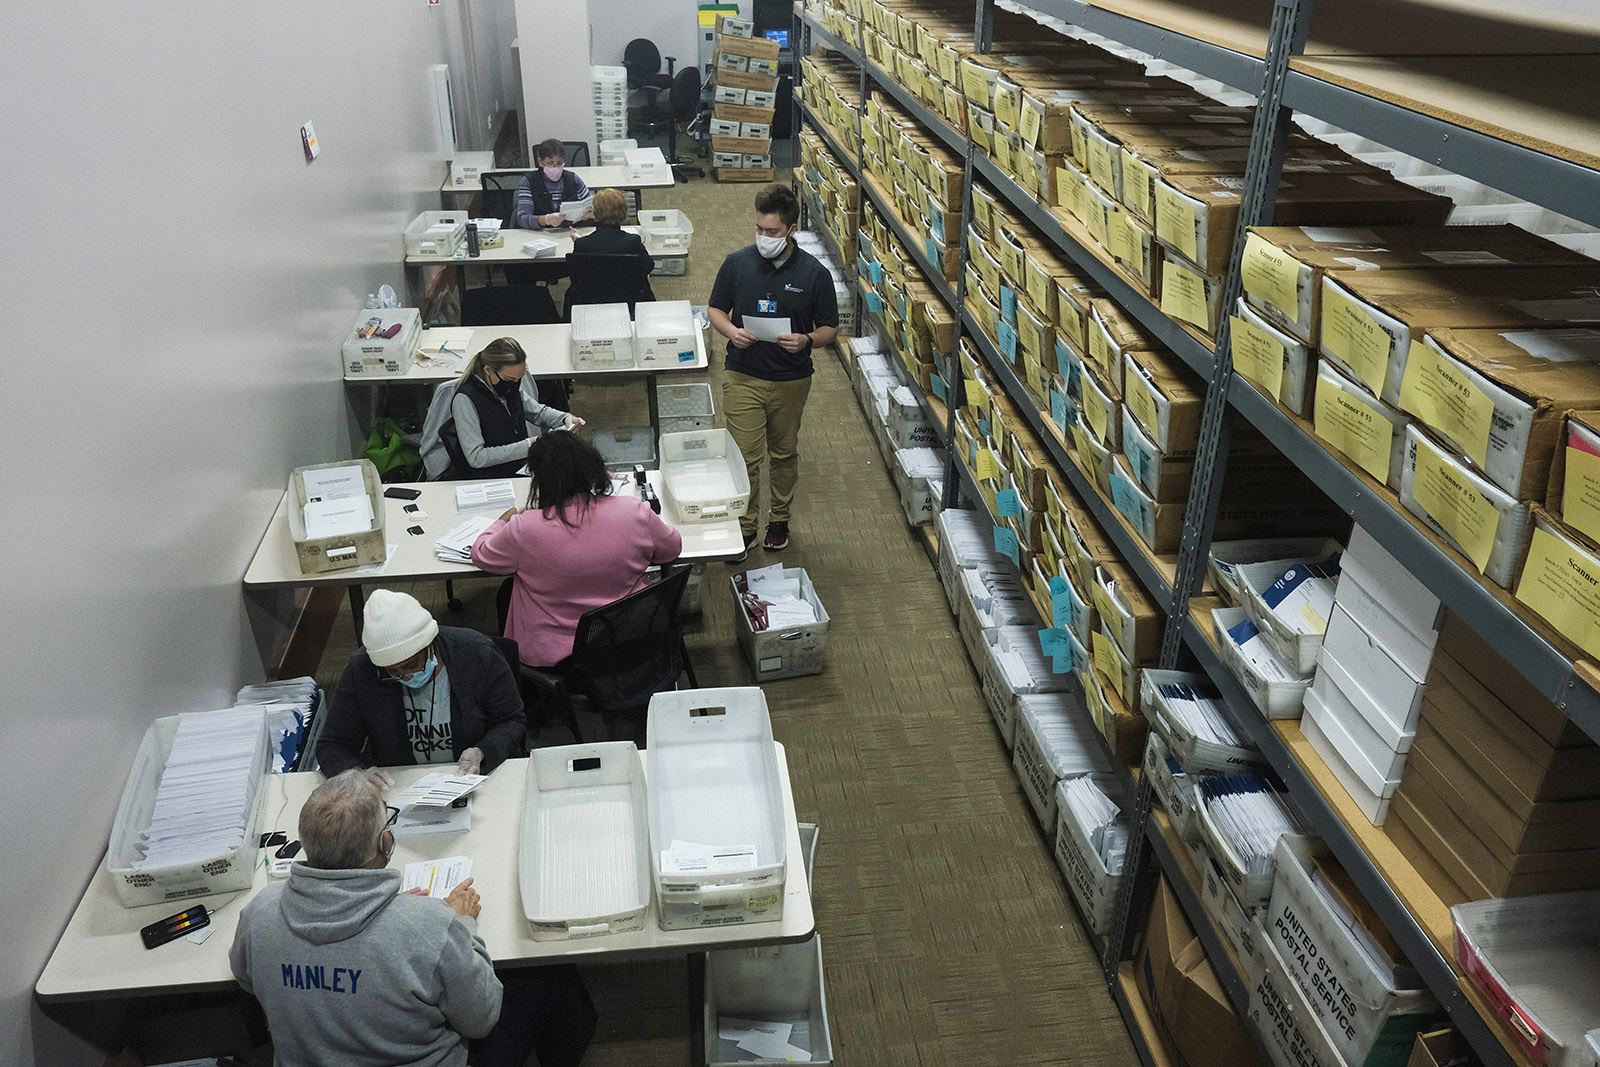 Election workers open and count ballots to be processed at the Franklin County Board of Elections on November 3, in Columbus, Ohio.